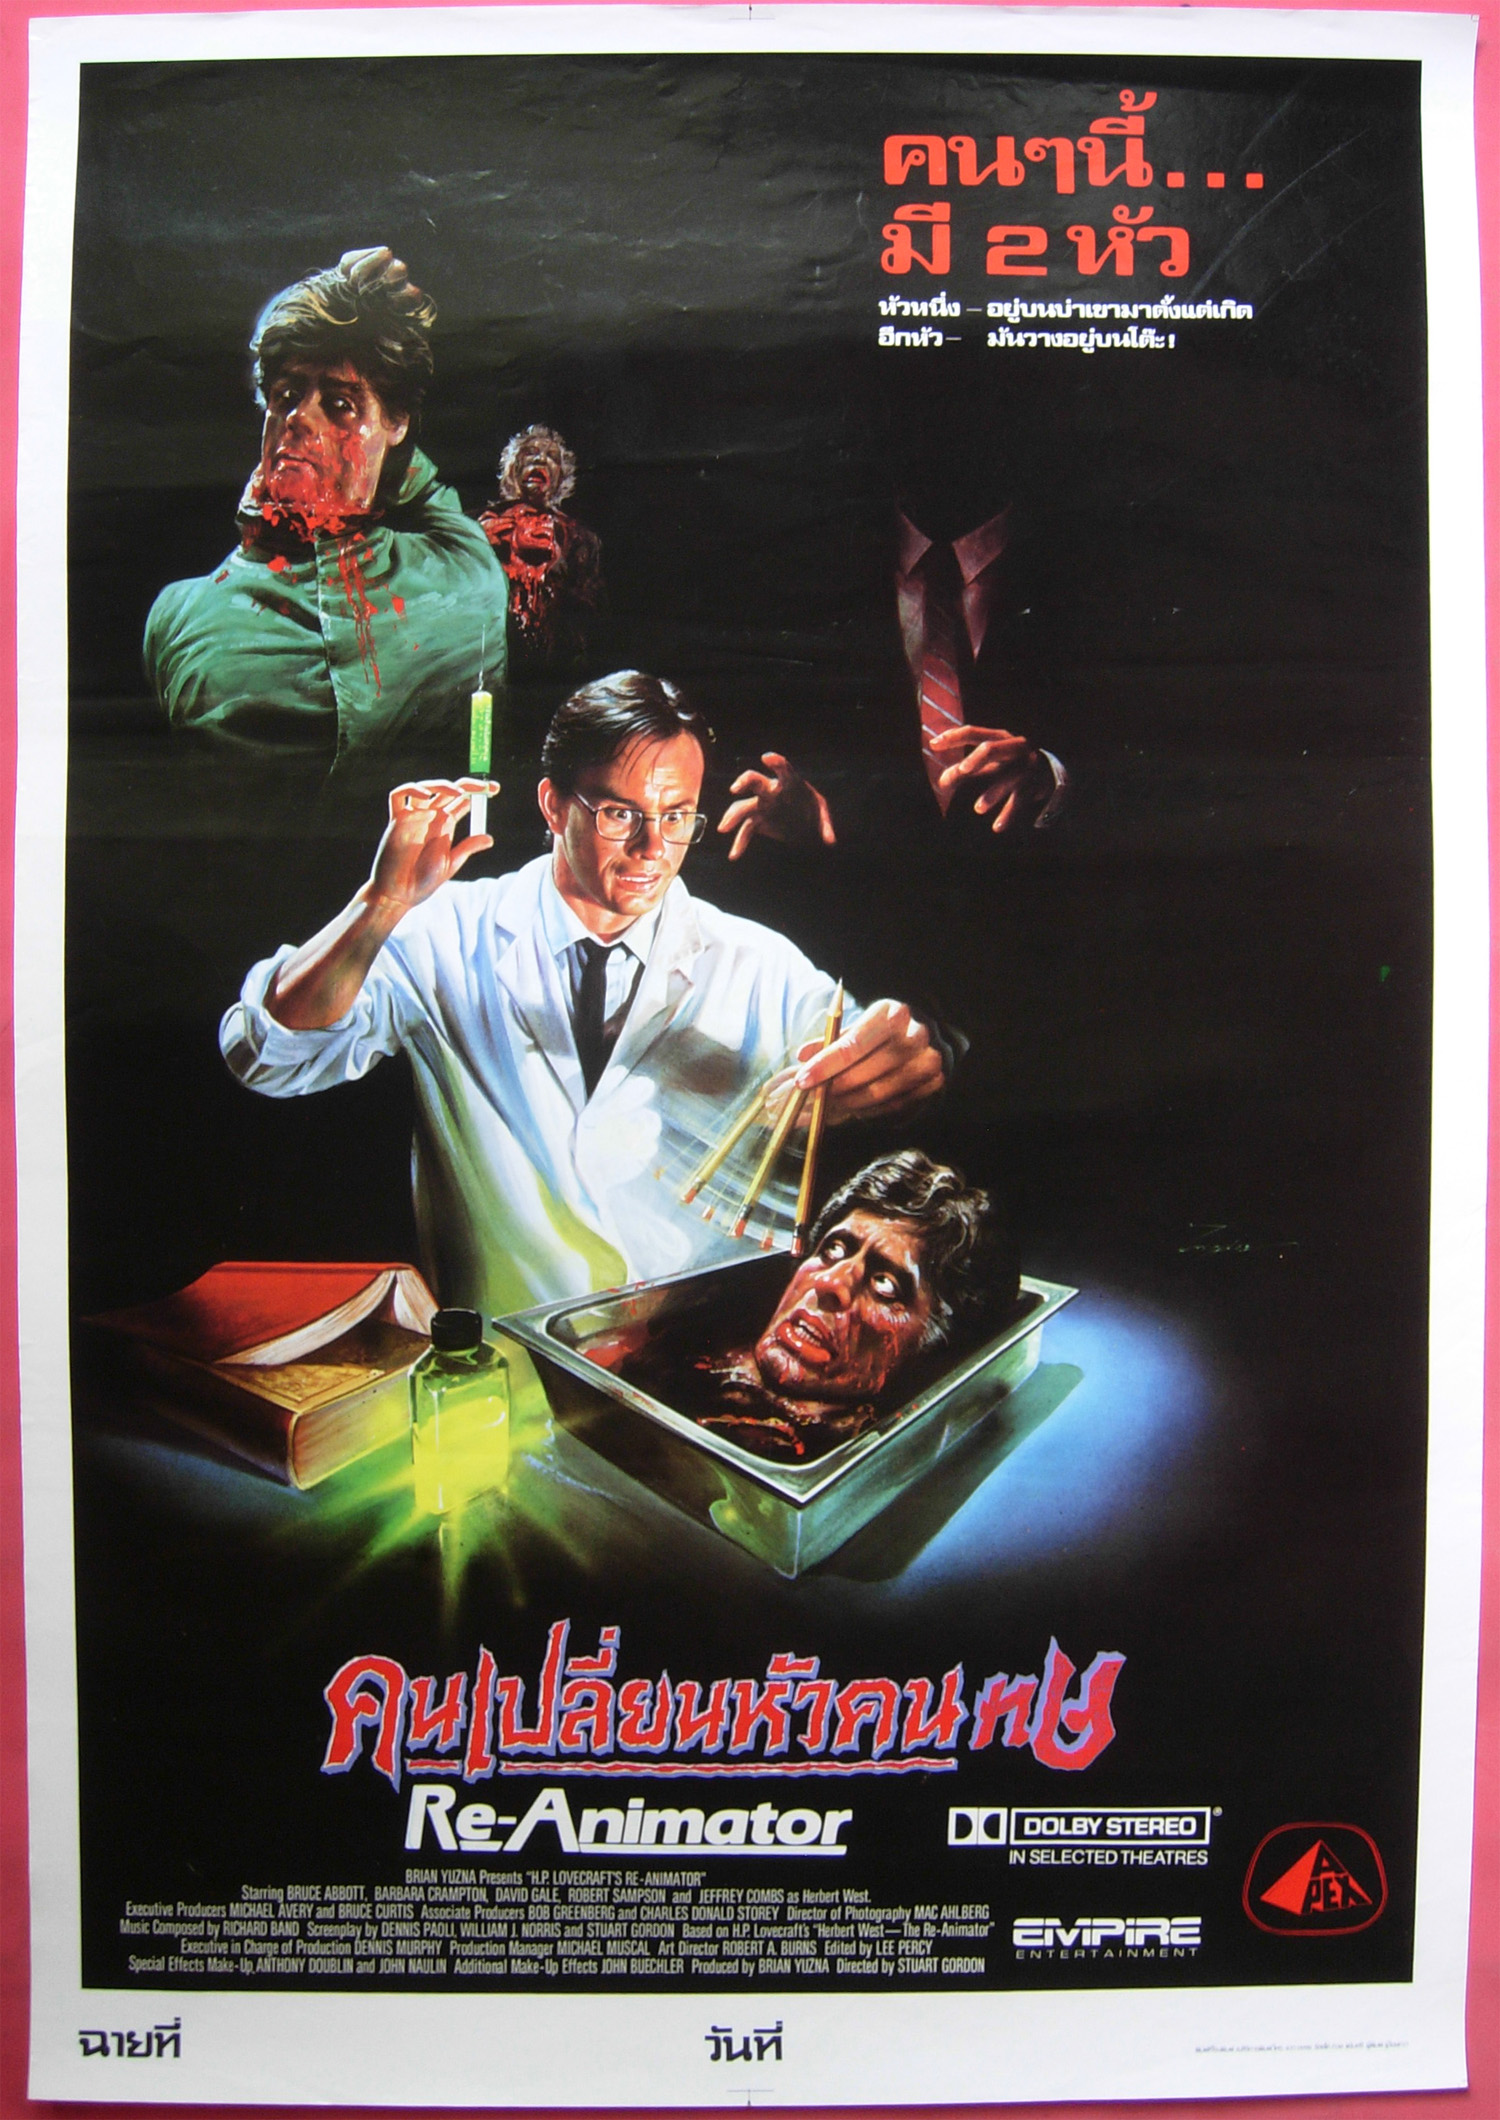 RE-ANIMATOR - Spanish poster - RARE PRINTS AND POSTERS